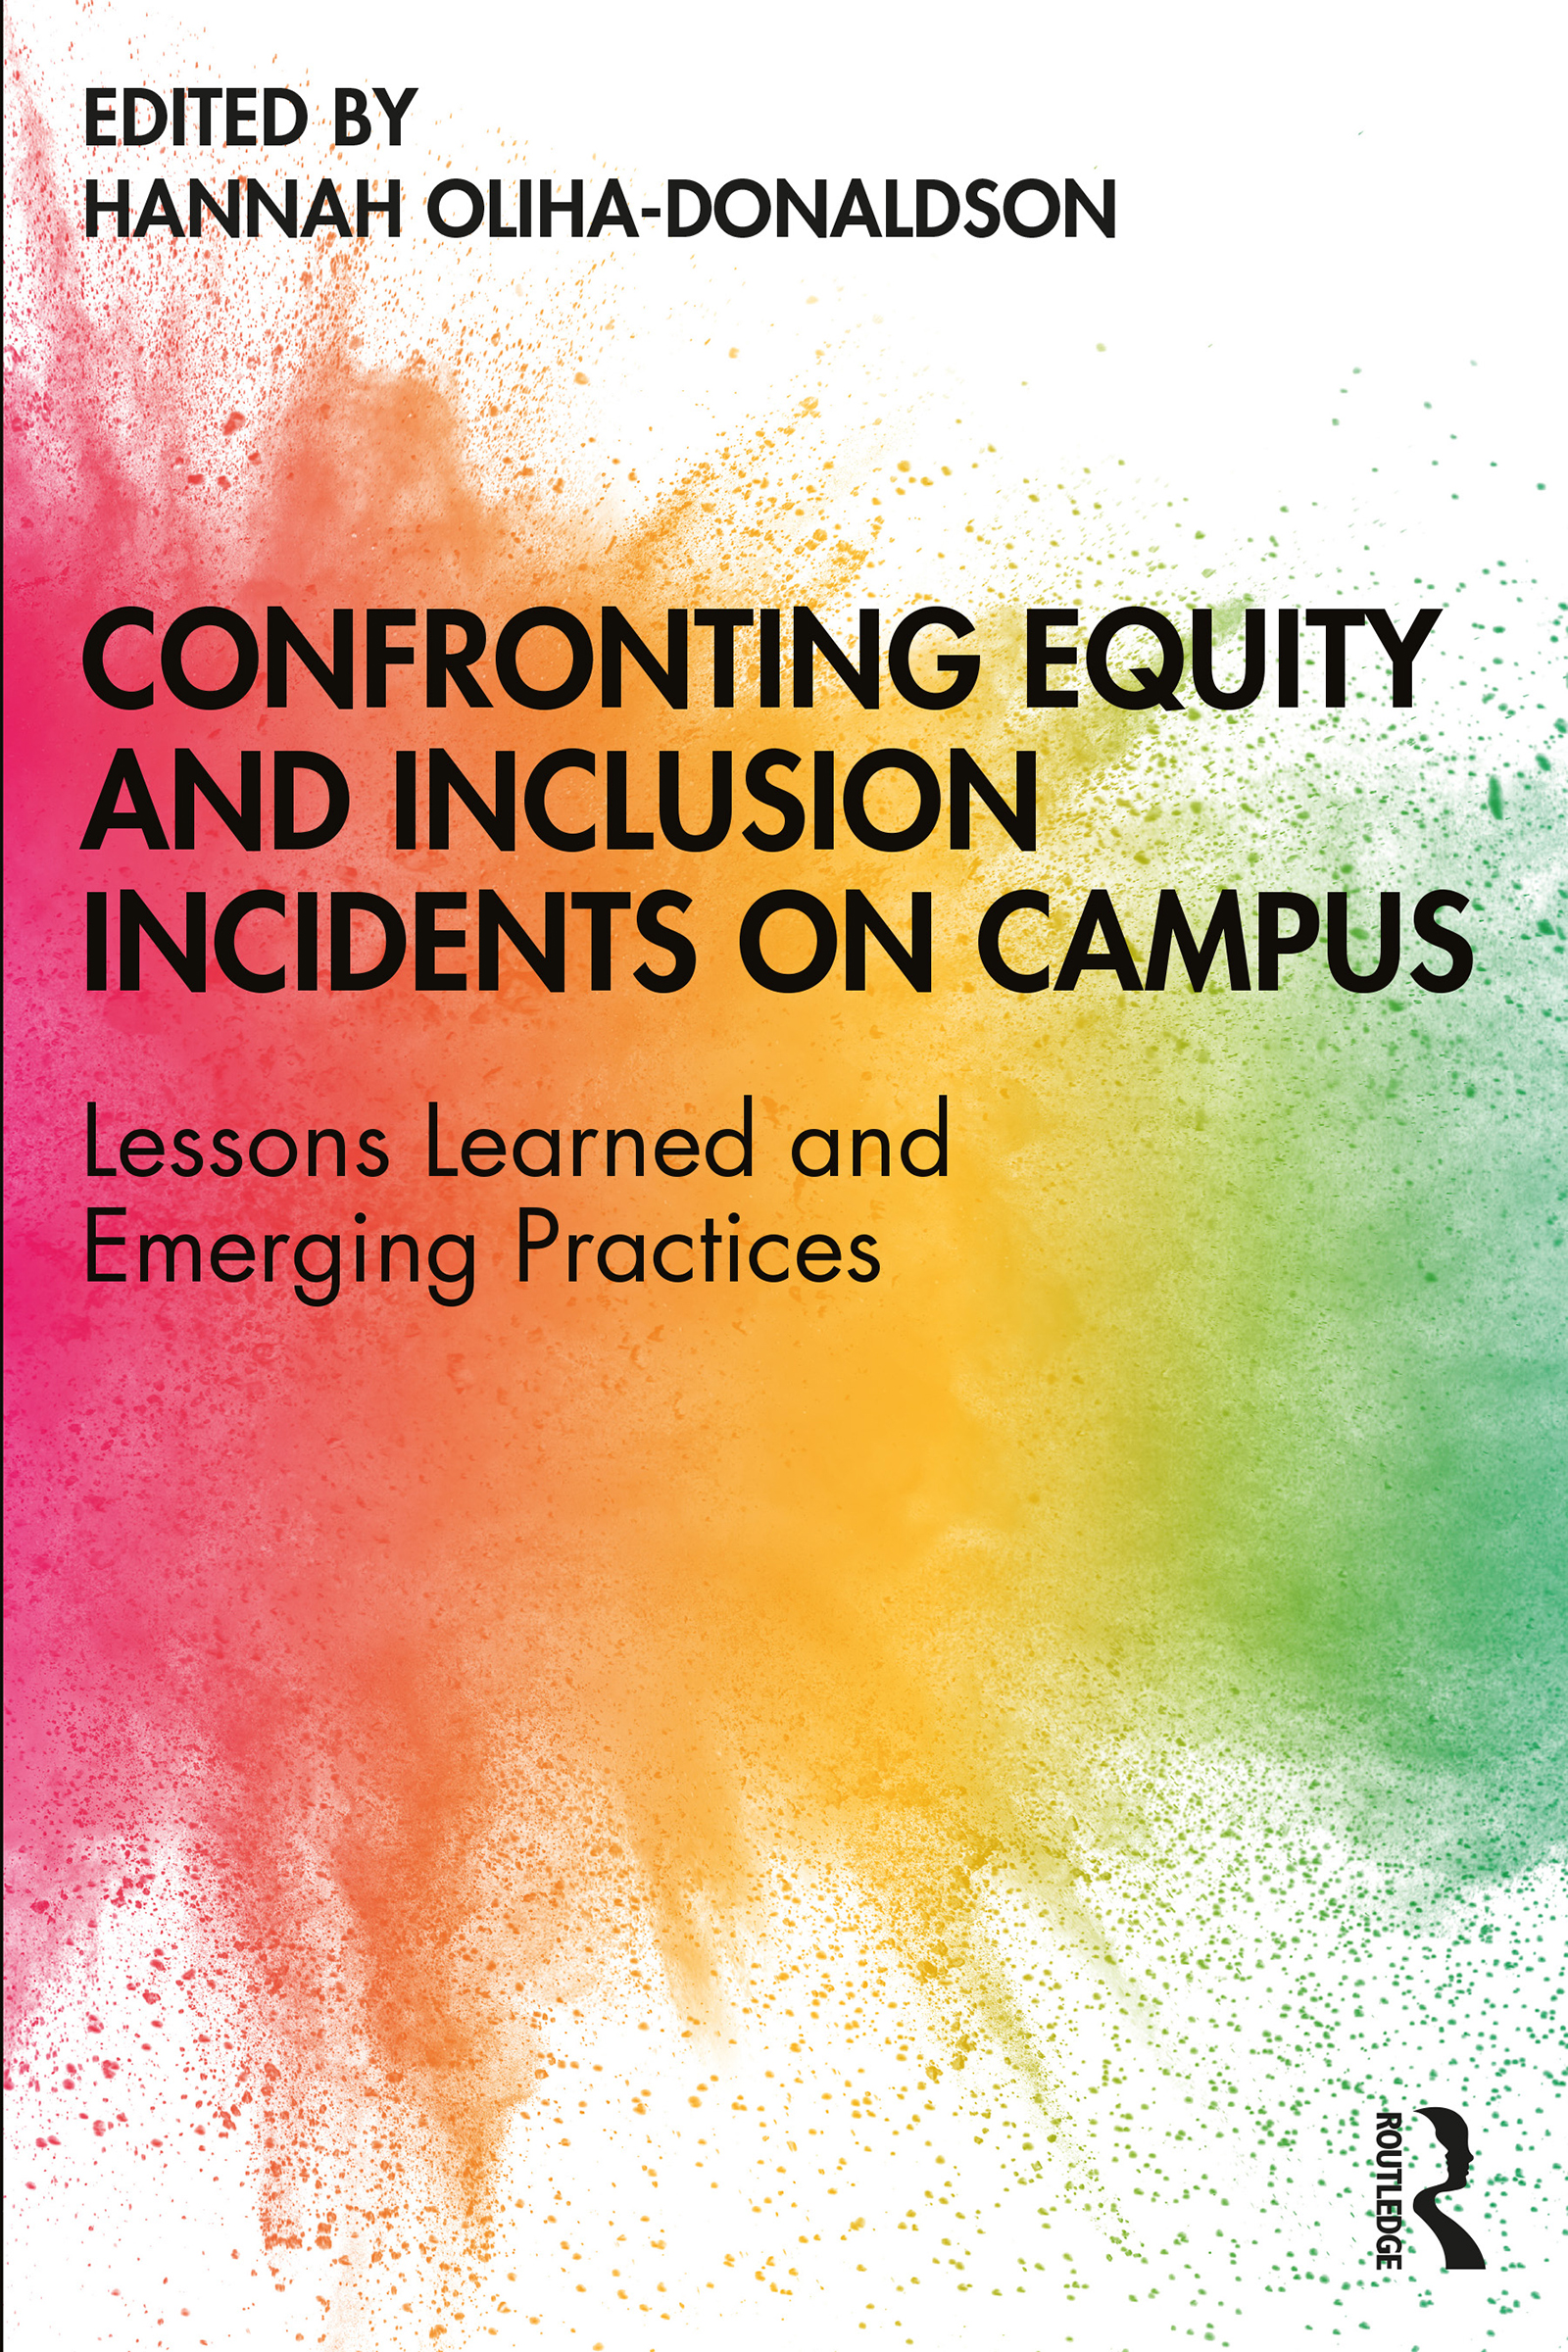 Confronting Equity and Inclusion Incidents on Campus